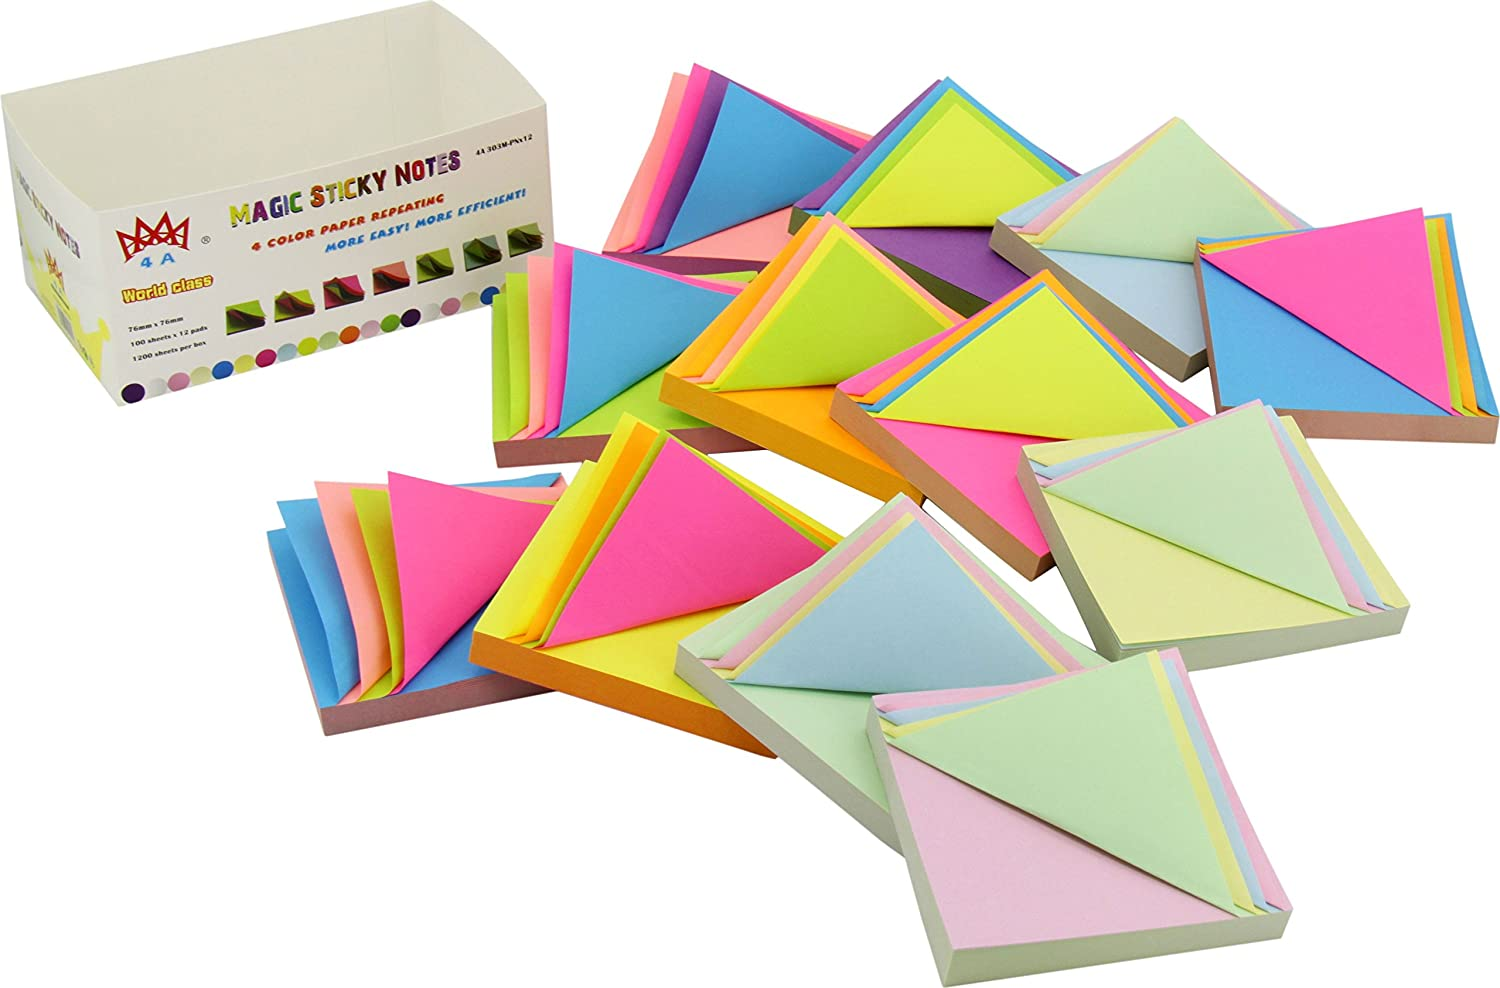 4a magic sticky notes4 color paper repeatingpad33 inches100 4a magic sticky notes4 color paper repeatingpad33 inches100 sheetspad12padsbox 5 boxes 4a mg30312 more easyefficient jeuxipadfo Images